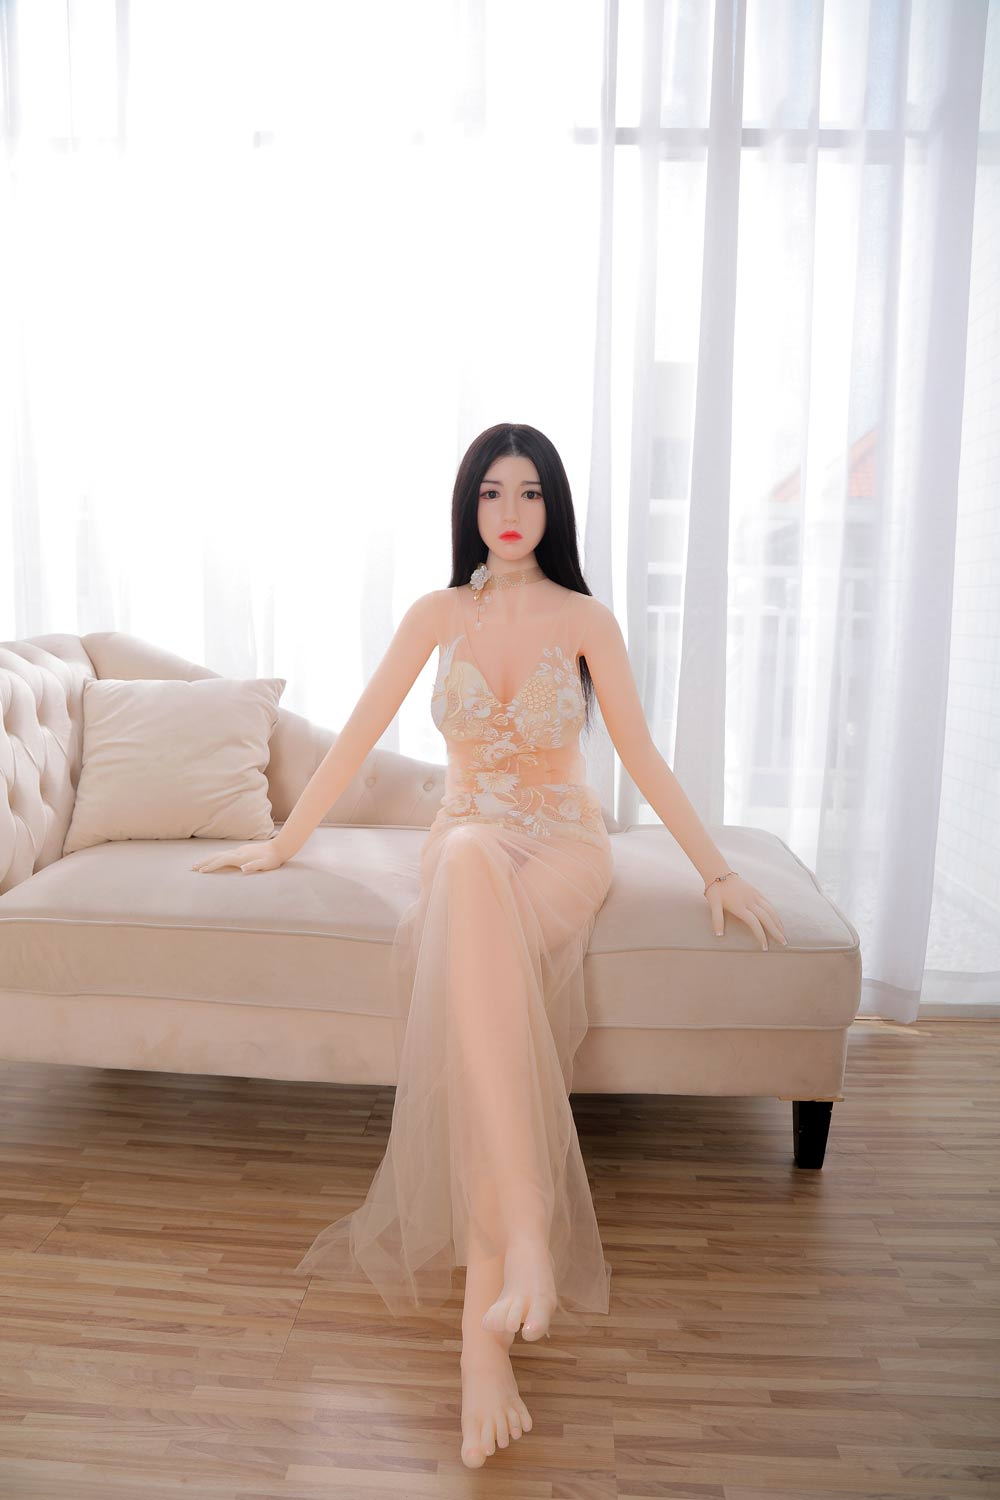 Silicone sex doll with hands on the sofa